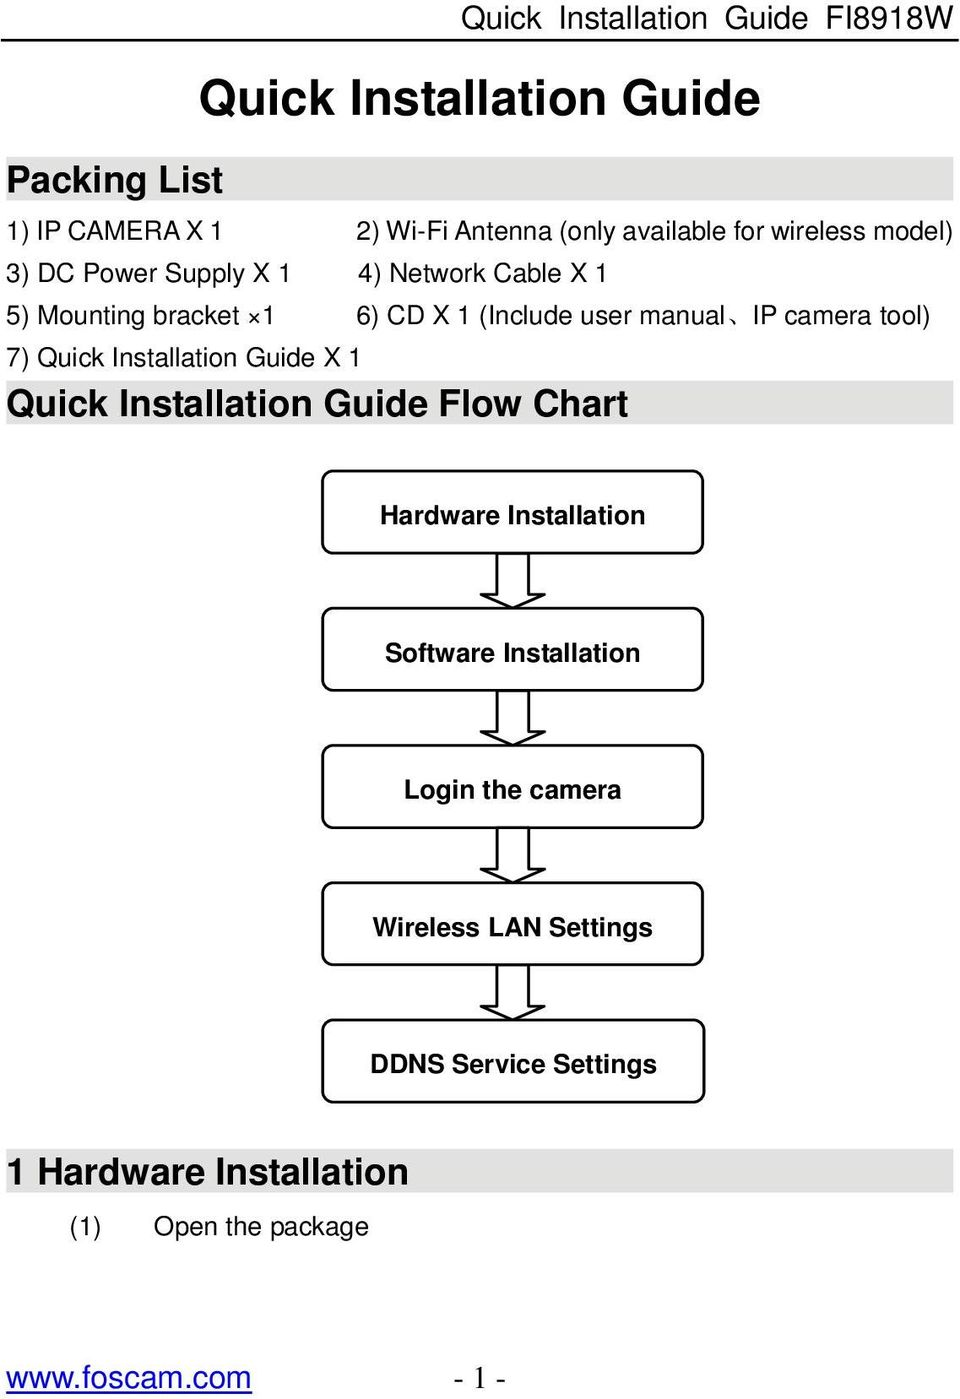 camera tool) 7) Quick Installation Guide X 1 Quick Installation Guide Flow Chart Hardware Installation Software